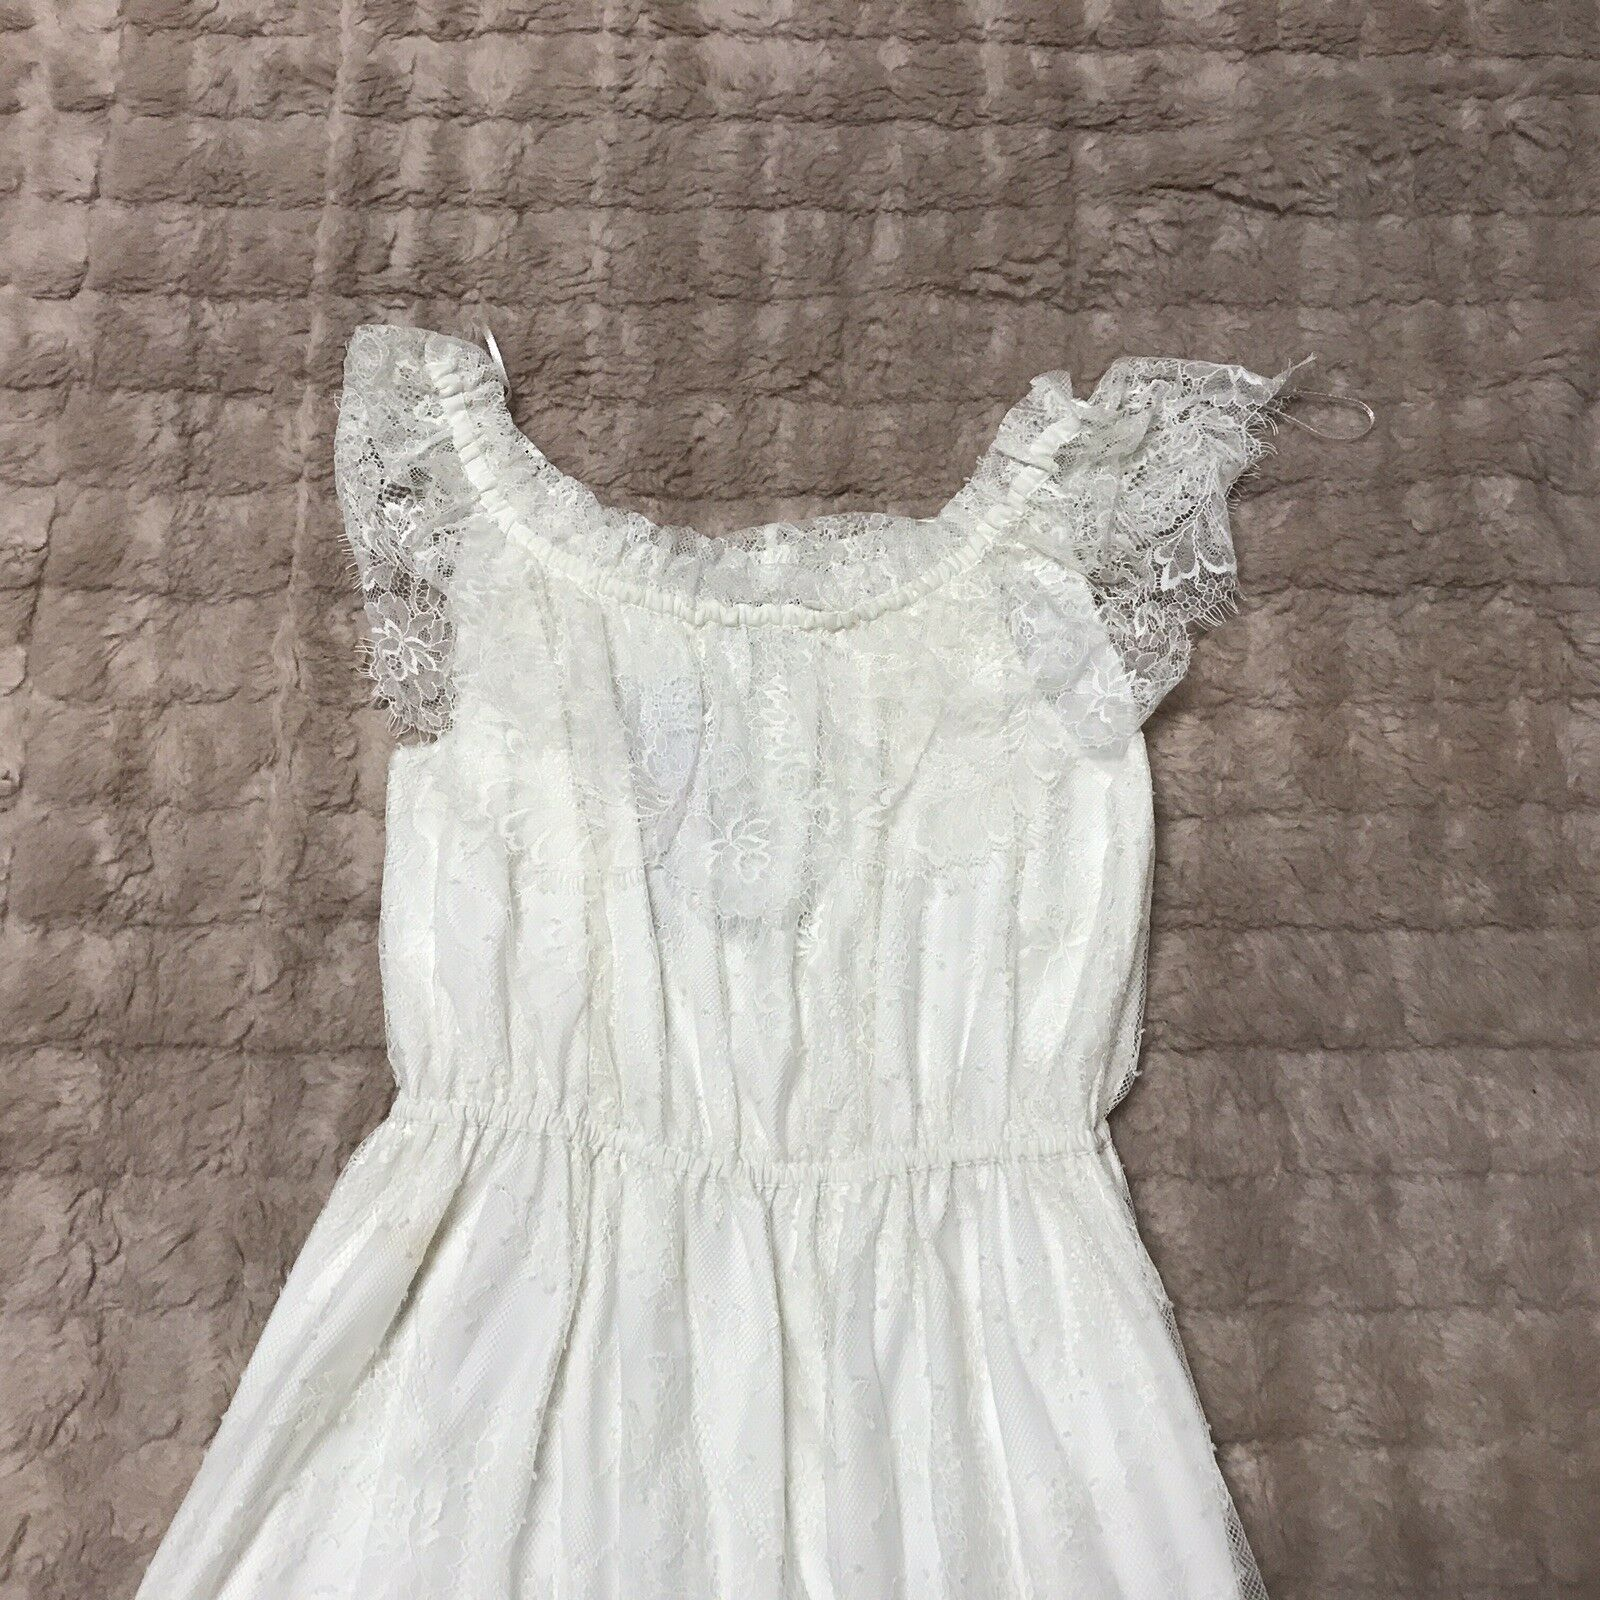 345 The Kooples White Bohemian Poetic Off Shoulder Lace Dress 58c7ed